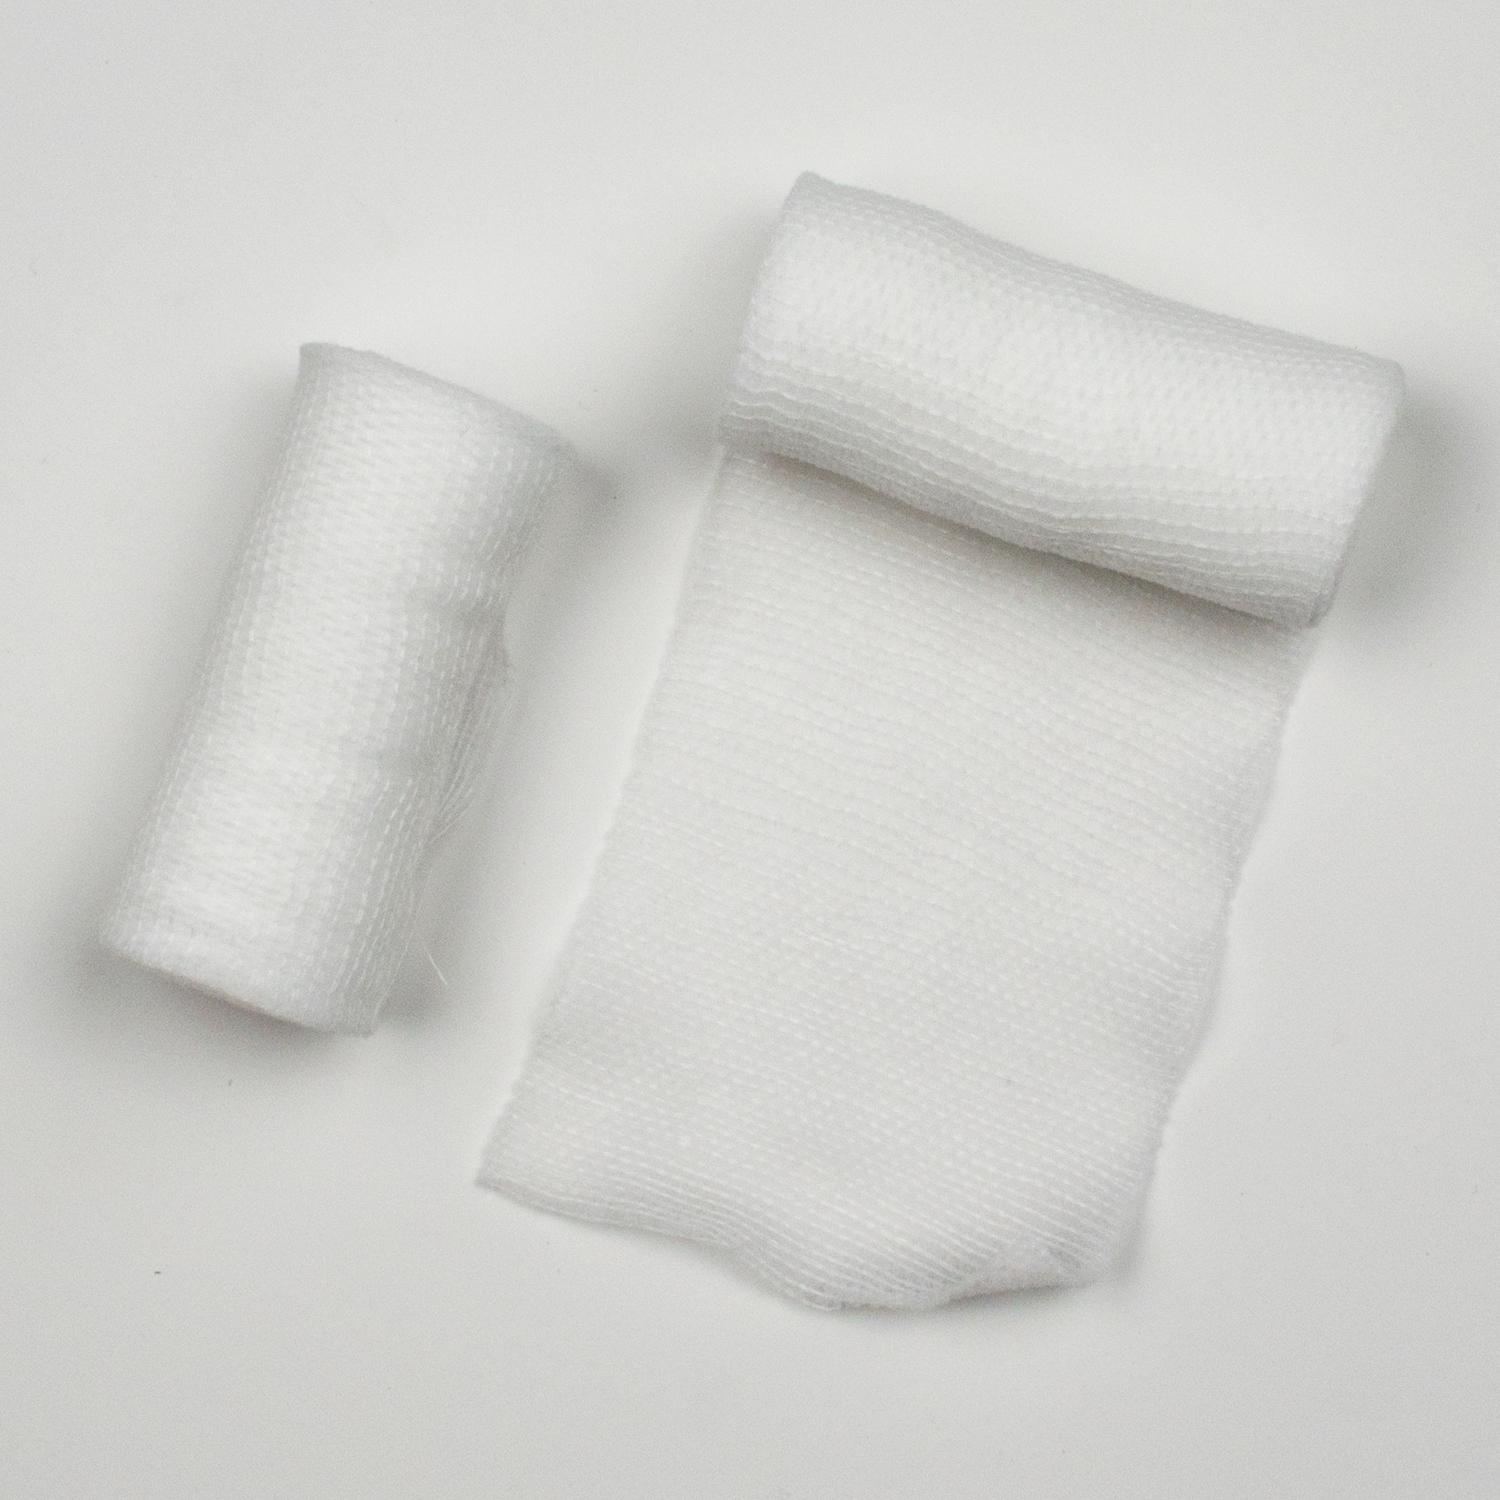 3 Inch Non Sterile Roller Gauze image